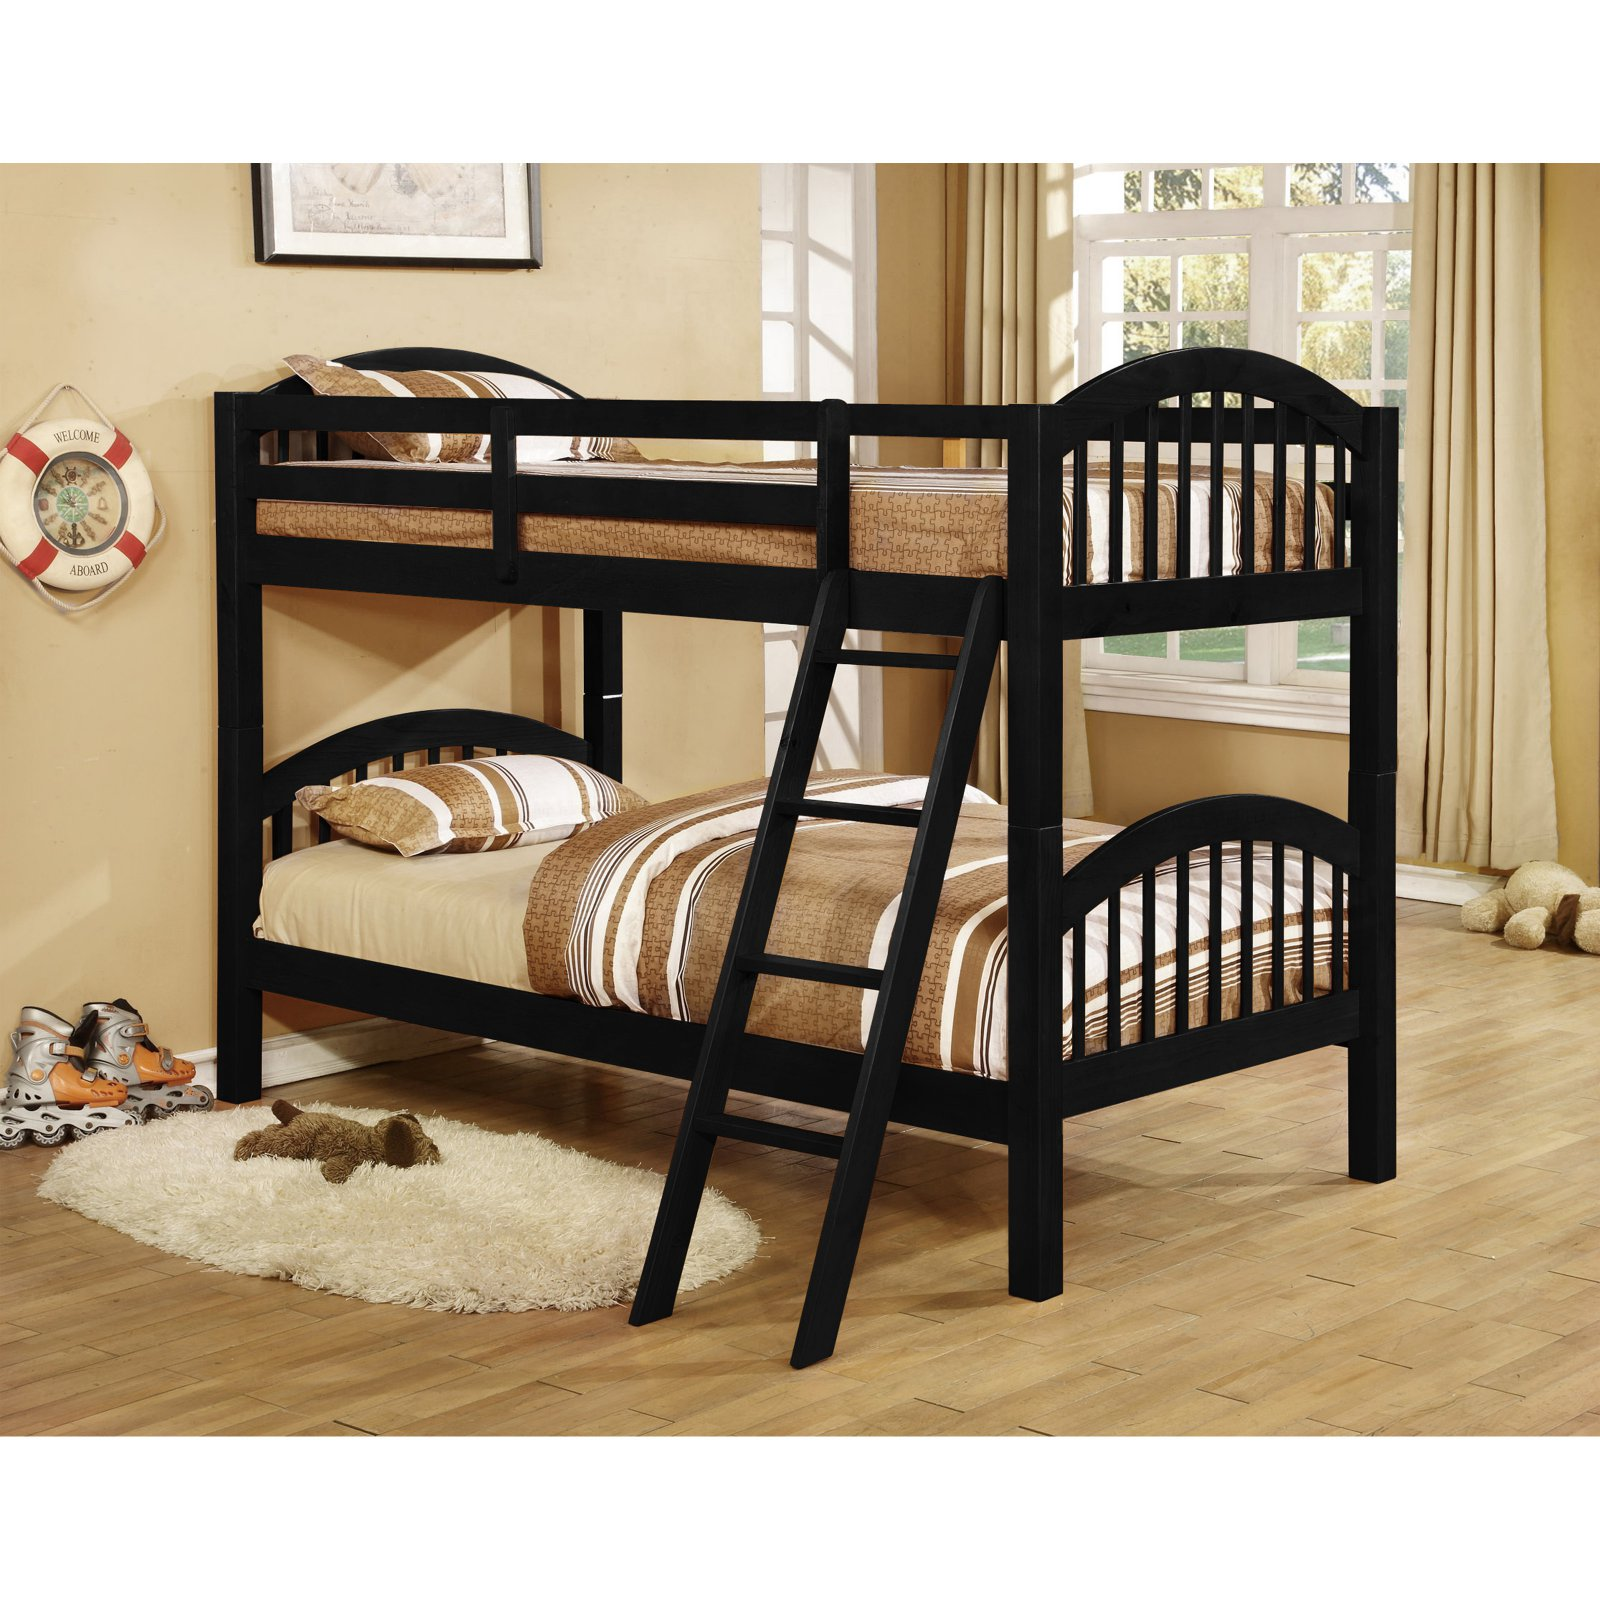 K&B Furniture B125B Arched Twin Over Twin Bunk Bed